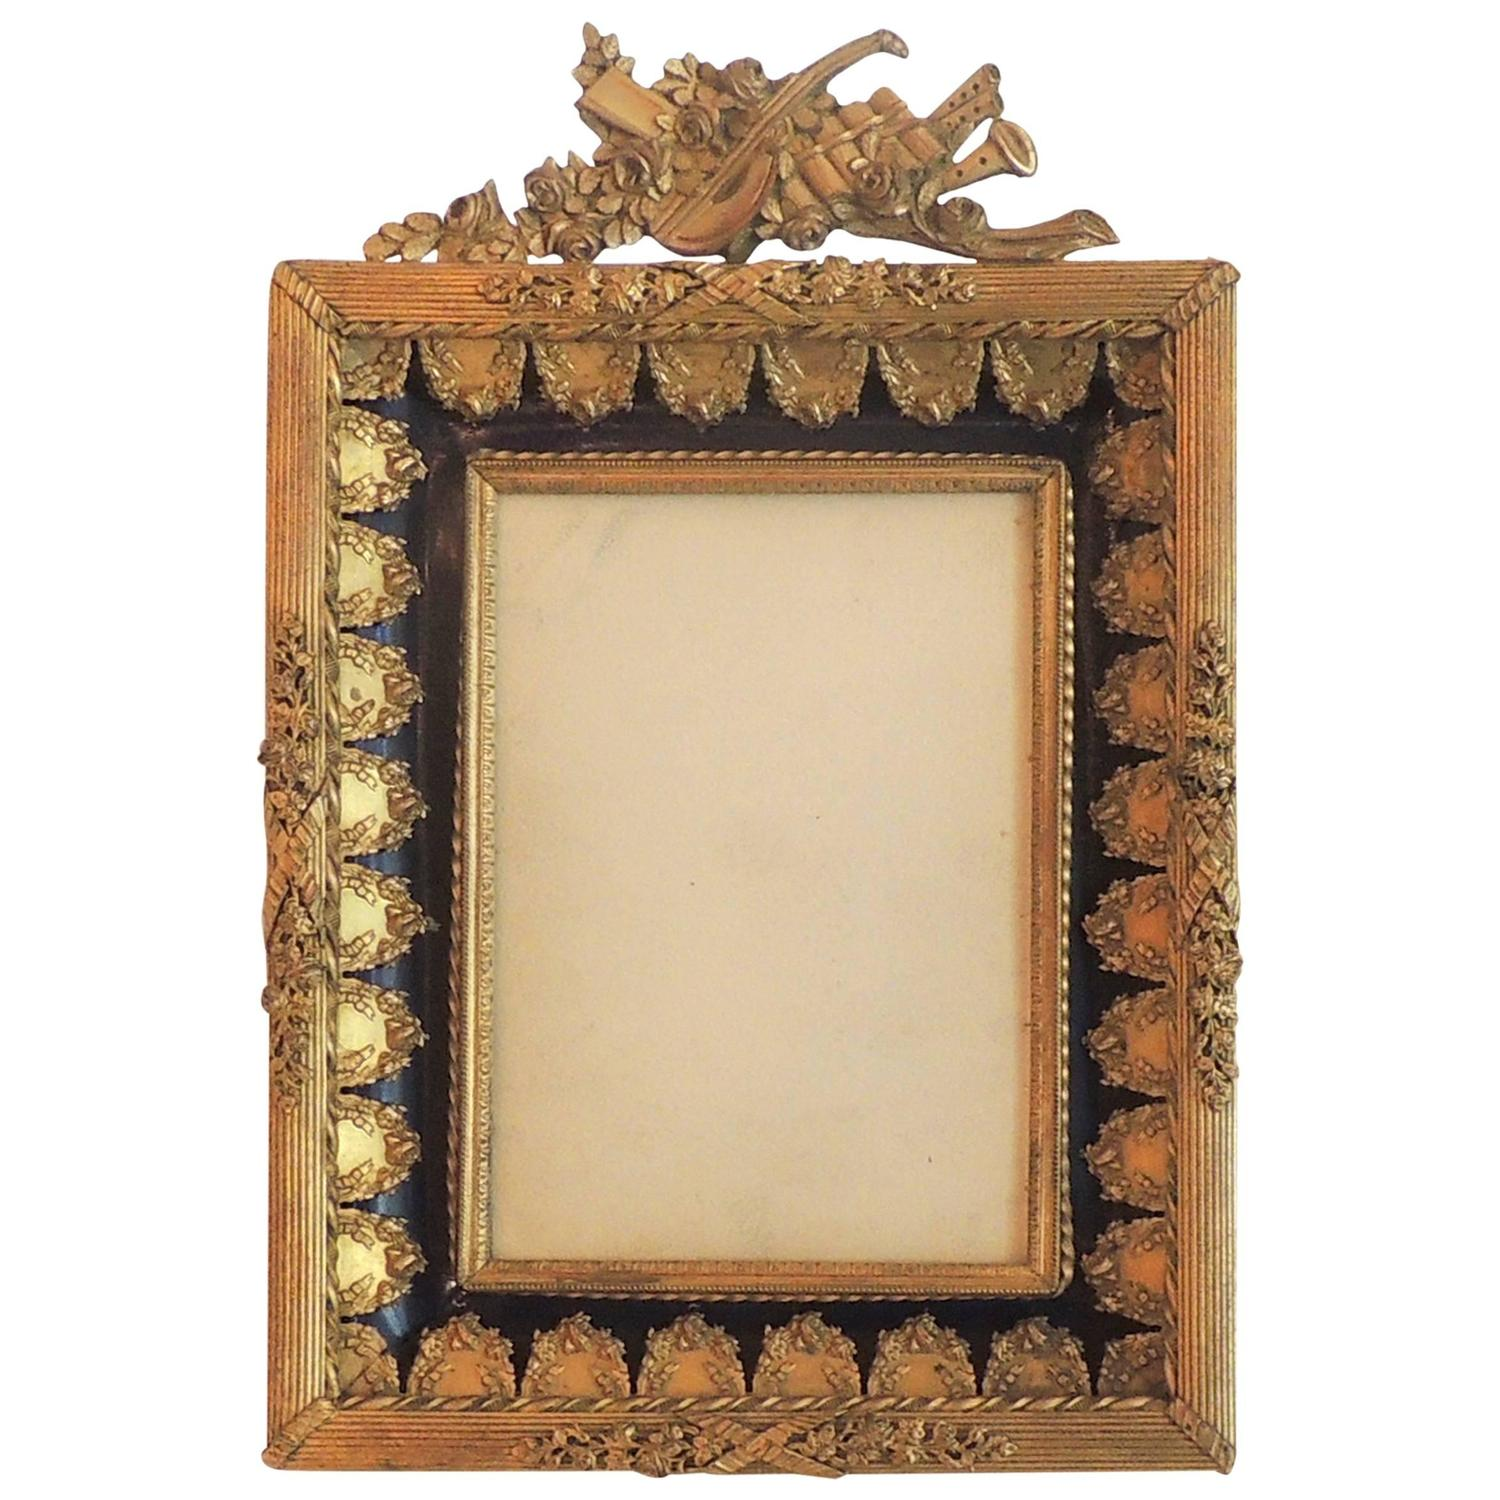 1930s picture frames 69 for sale at 1stdibs wonderful french dor bronze blue enamel neoclassical musical picture frame jeuxipadfo Choice Image